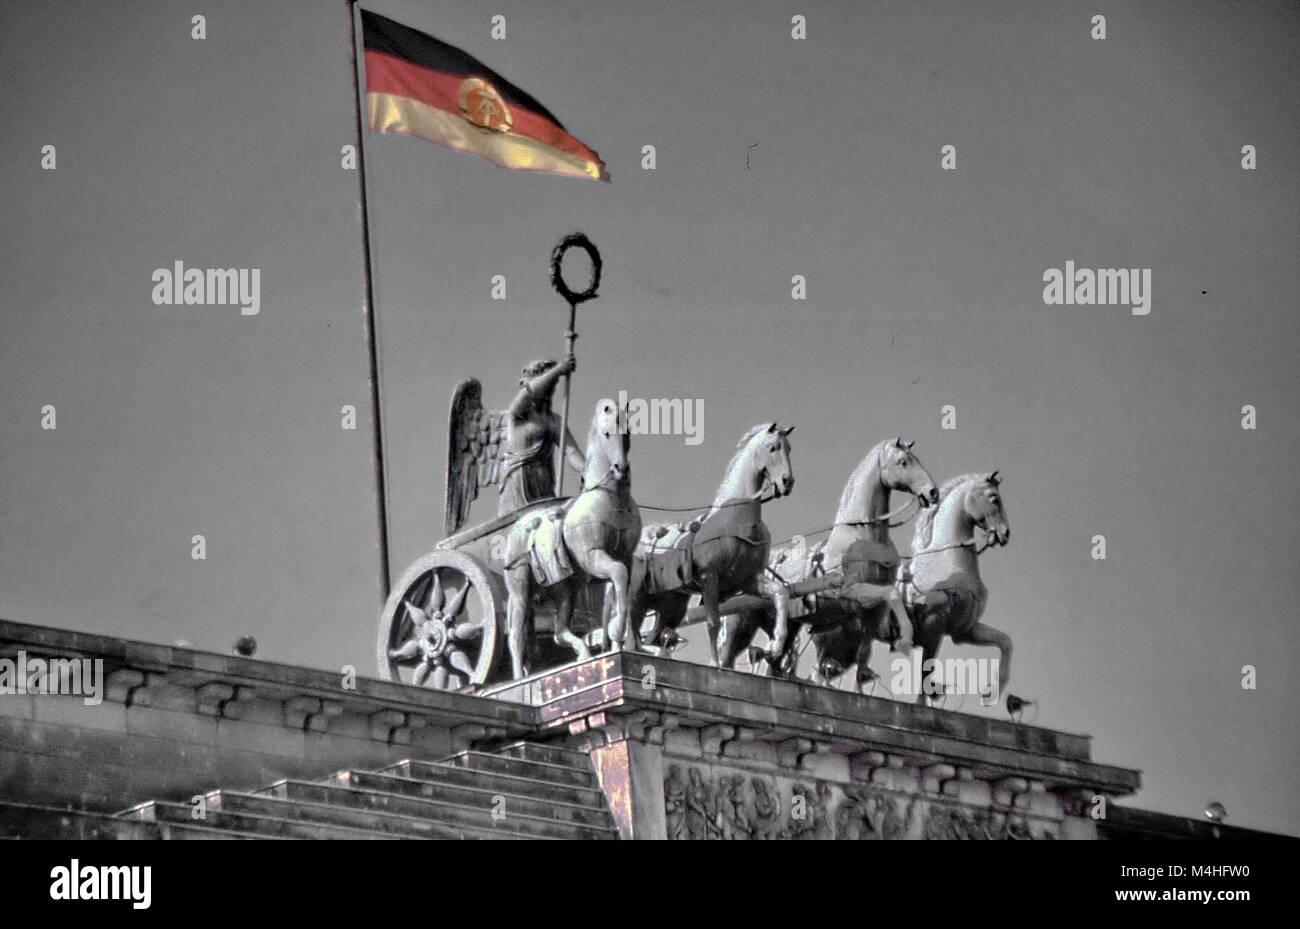 The Quadriga on the Brandenburg Gate with the flag of the German Democratic Republic. - Stock Image